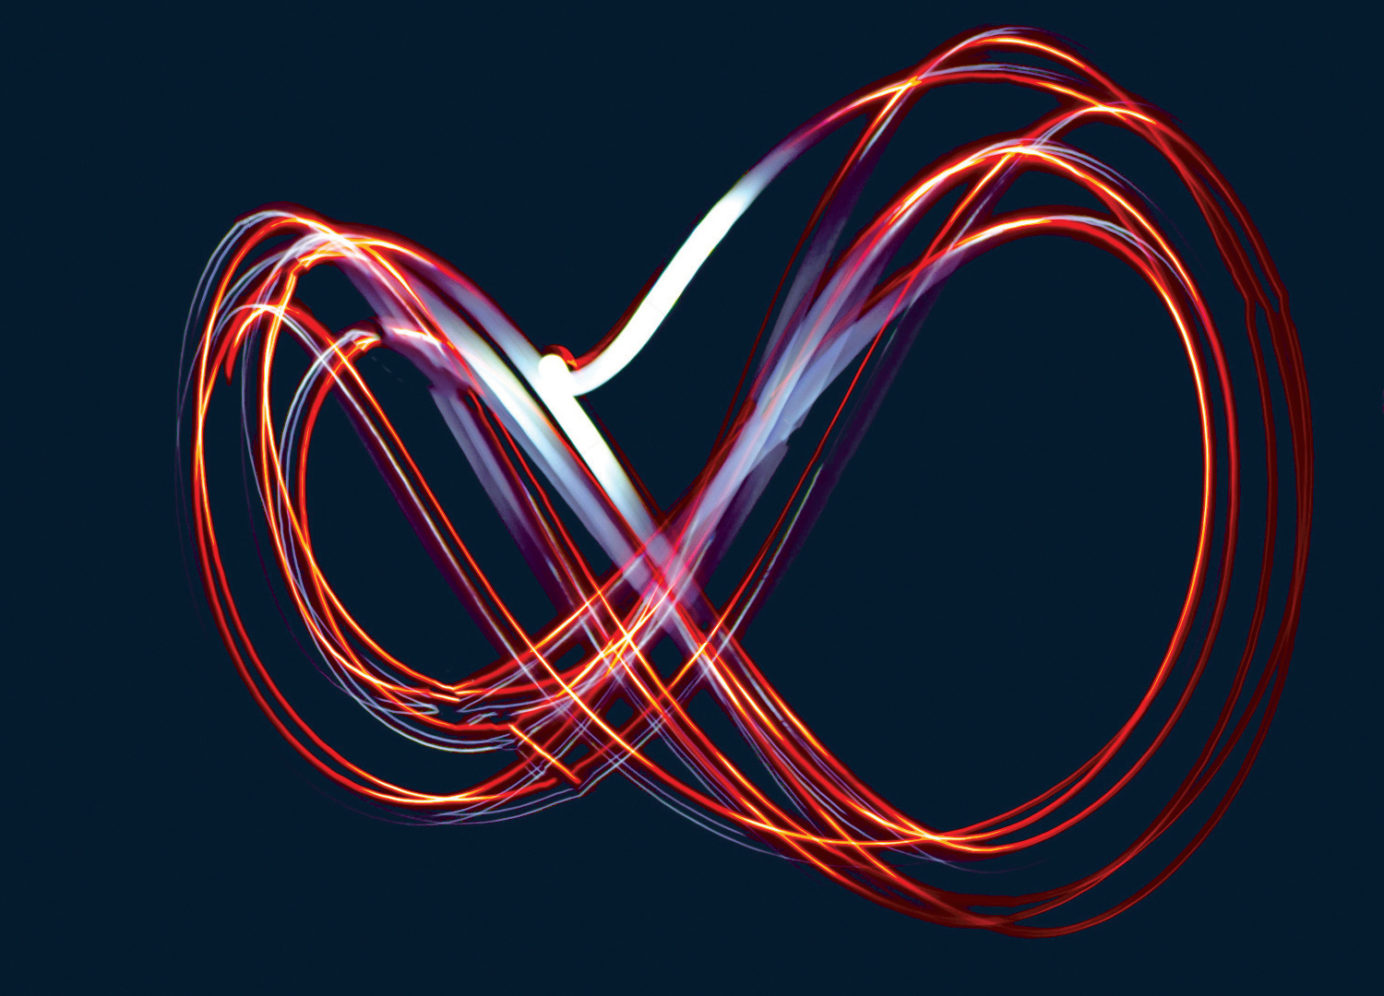 infinity symbol drawn with coloured light